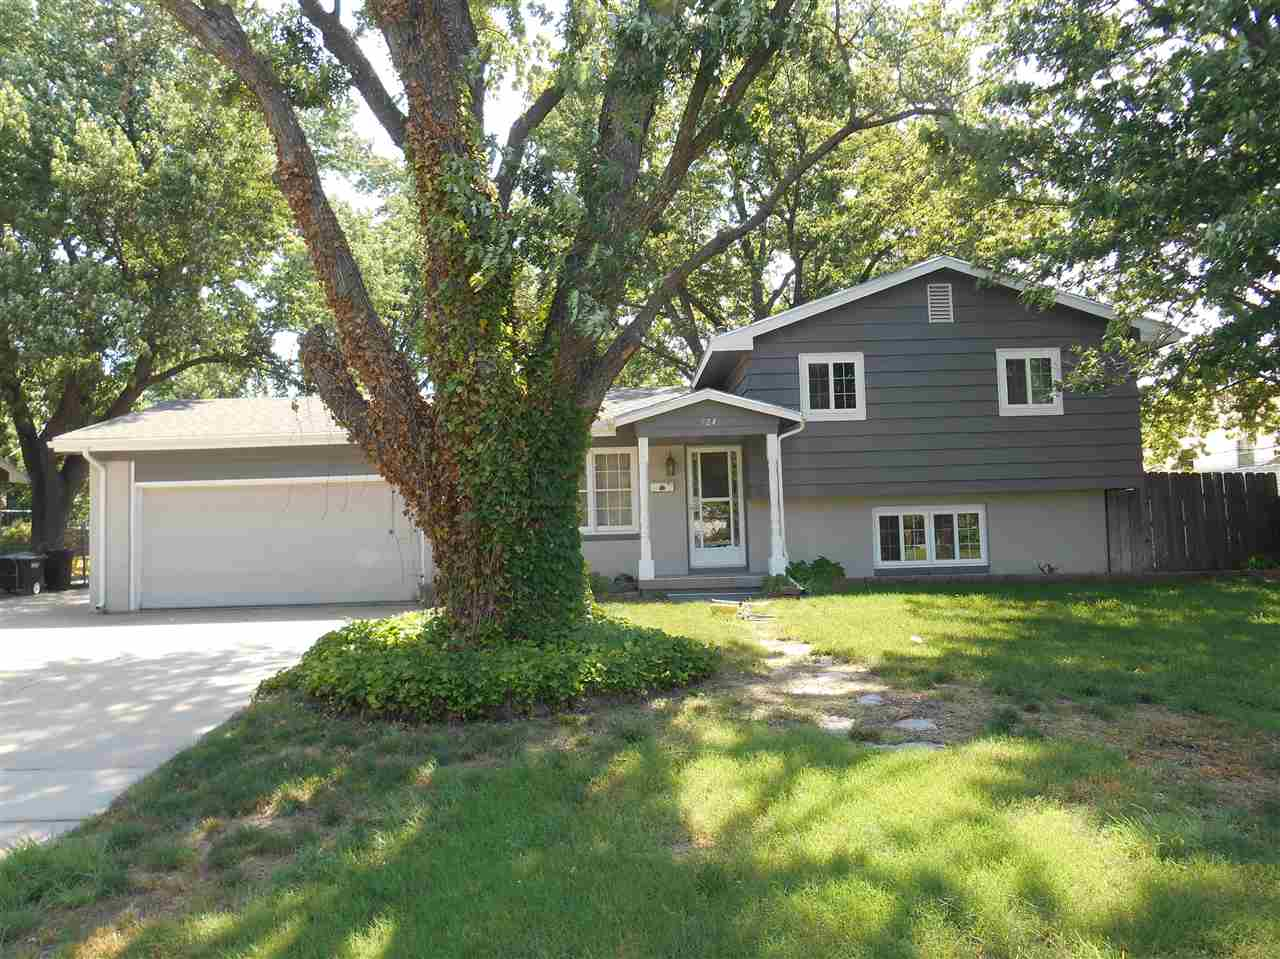 NICE ROOMIE SPLIT LEVEL HOME THAT OFFERS THREE BEDROOMS UP AND ONE BIG MASTER SUITE/ FAMILY ROOM ON